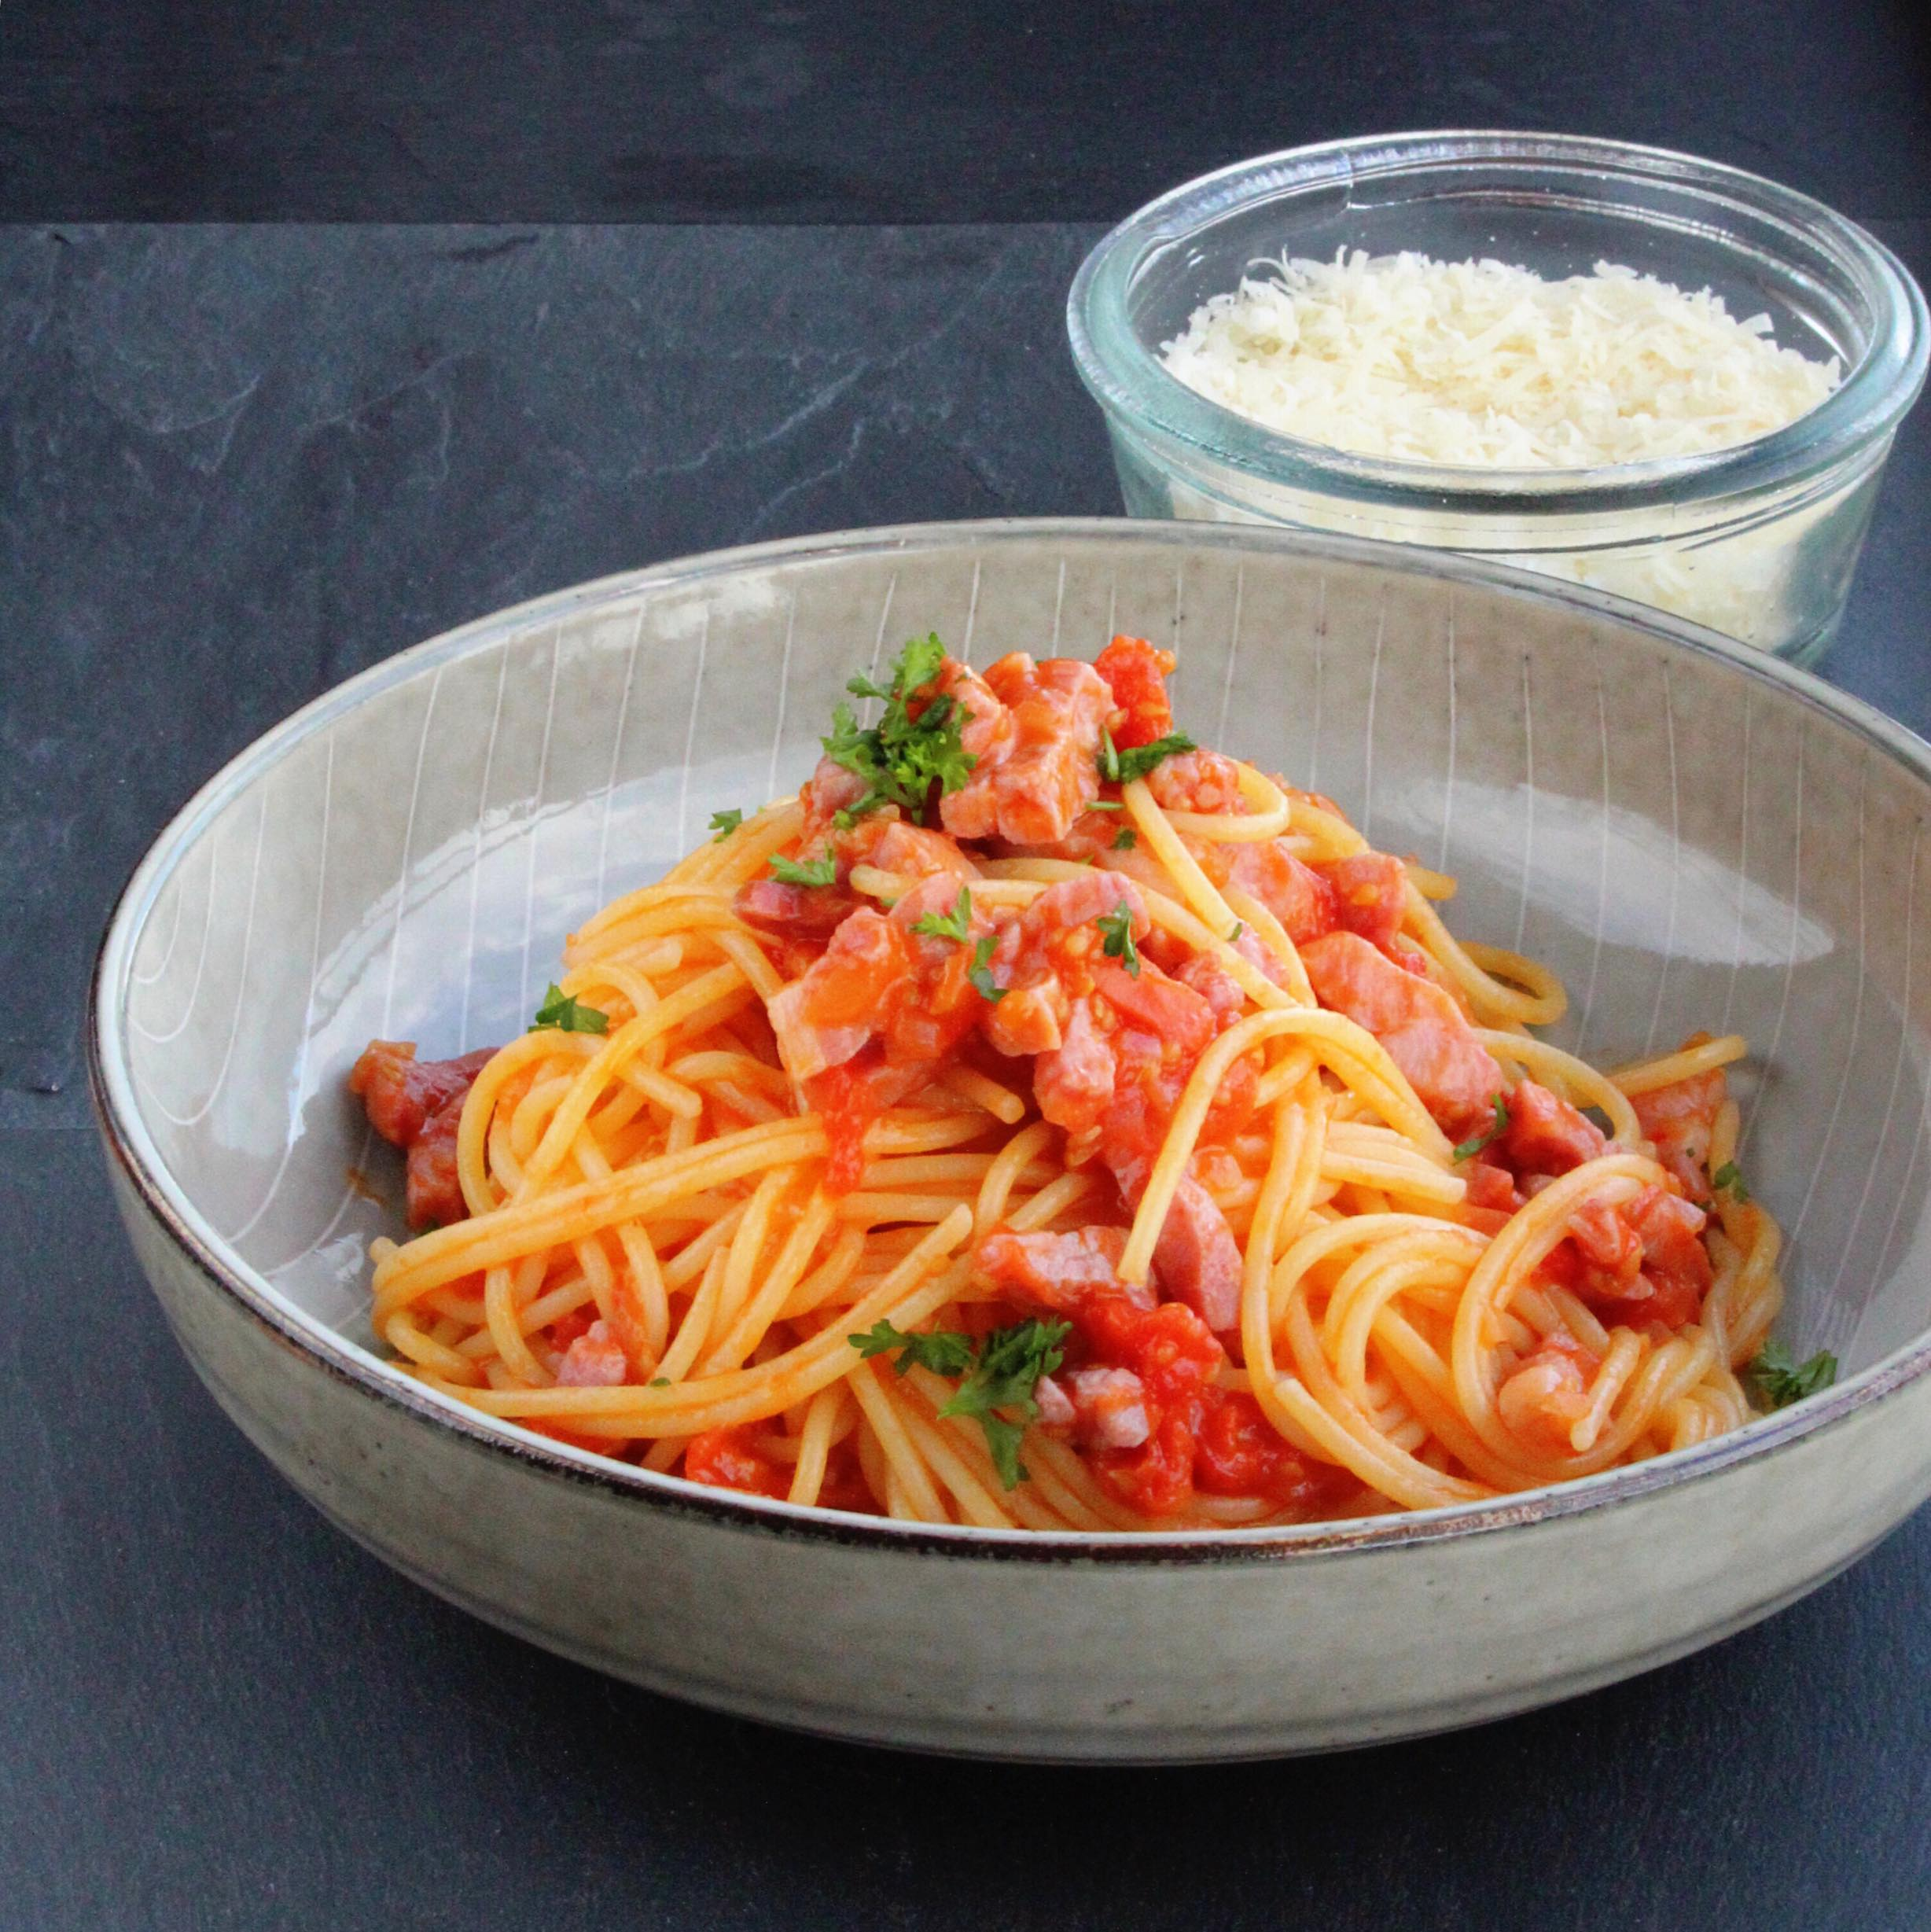 Traditional Spaghetti all'Amatriciana